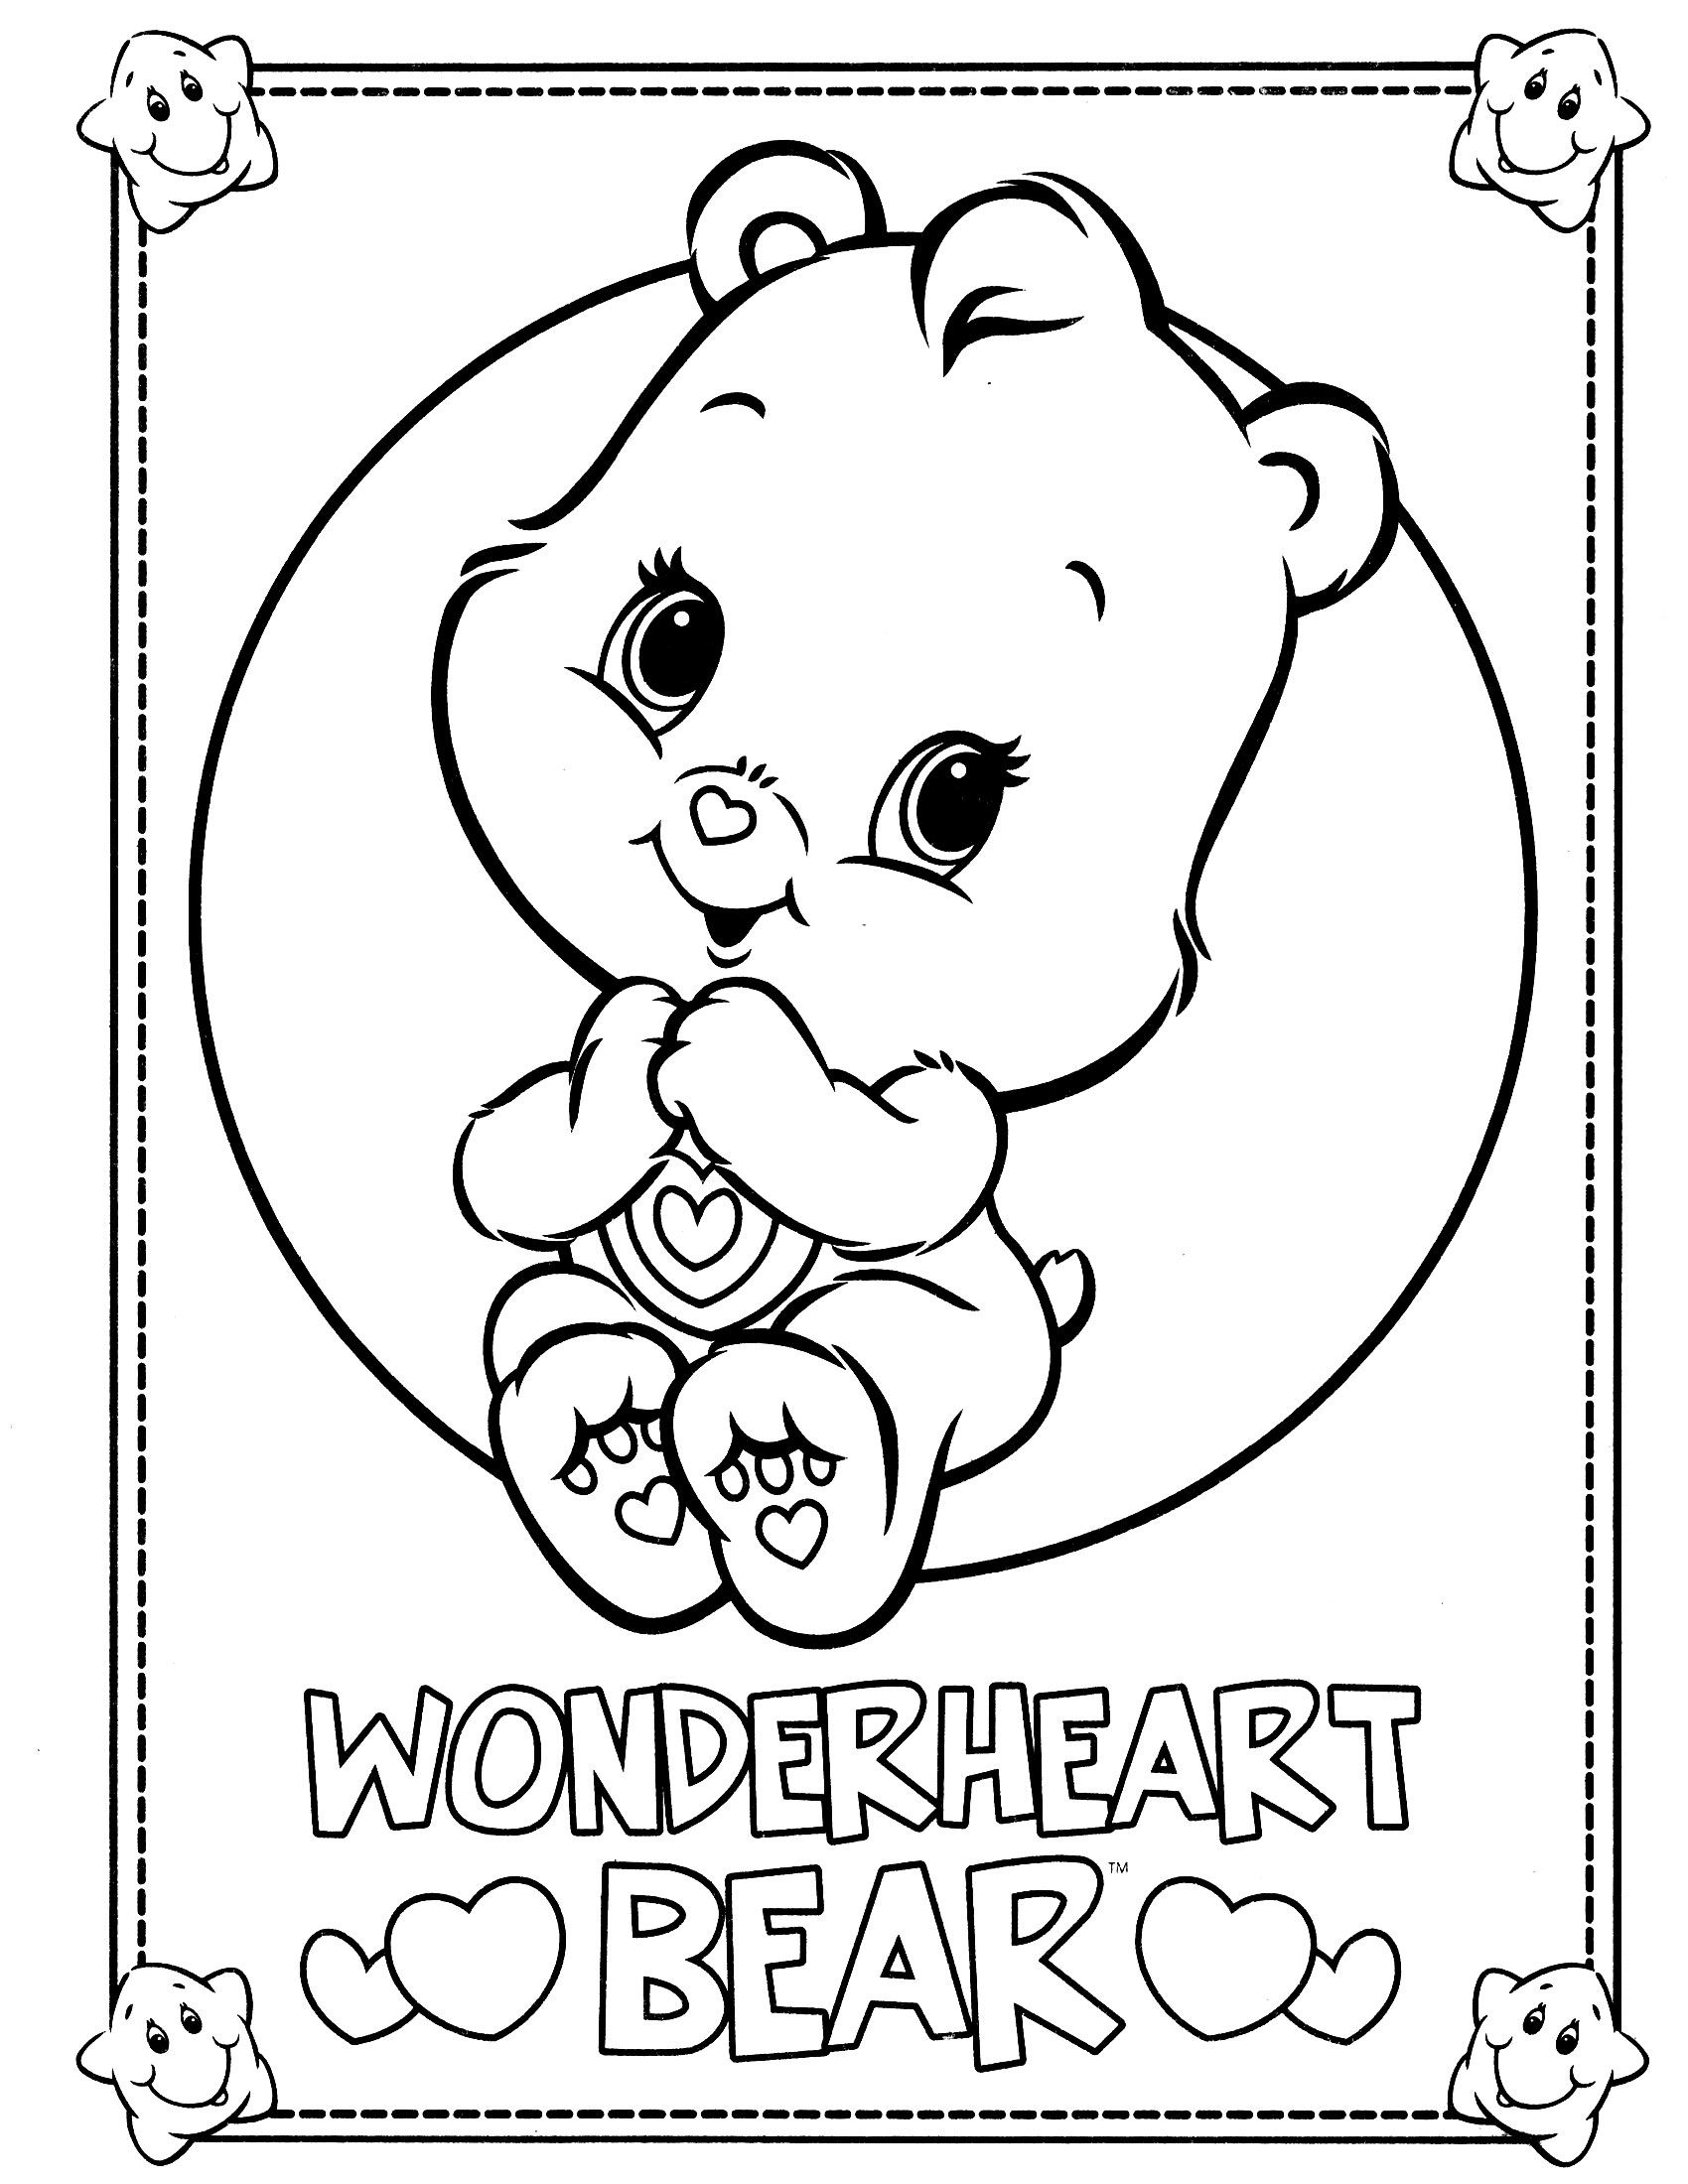 Care Bears Coloring Page Embroider Pinterest Care Bears